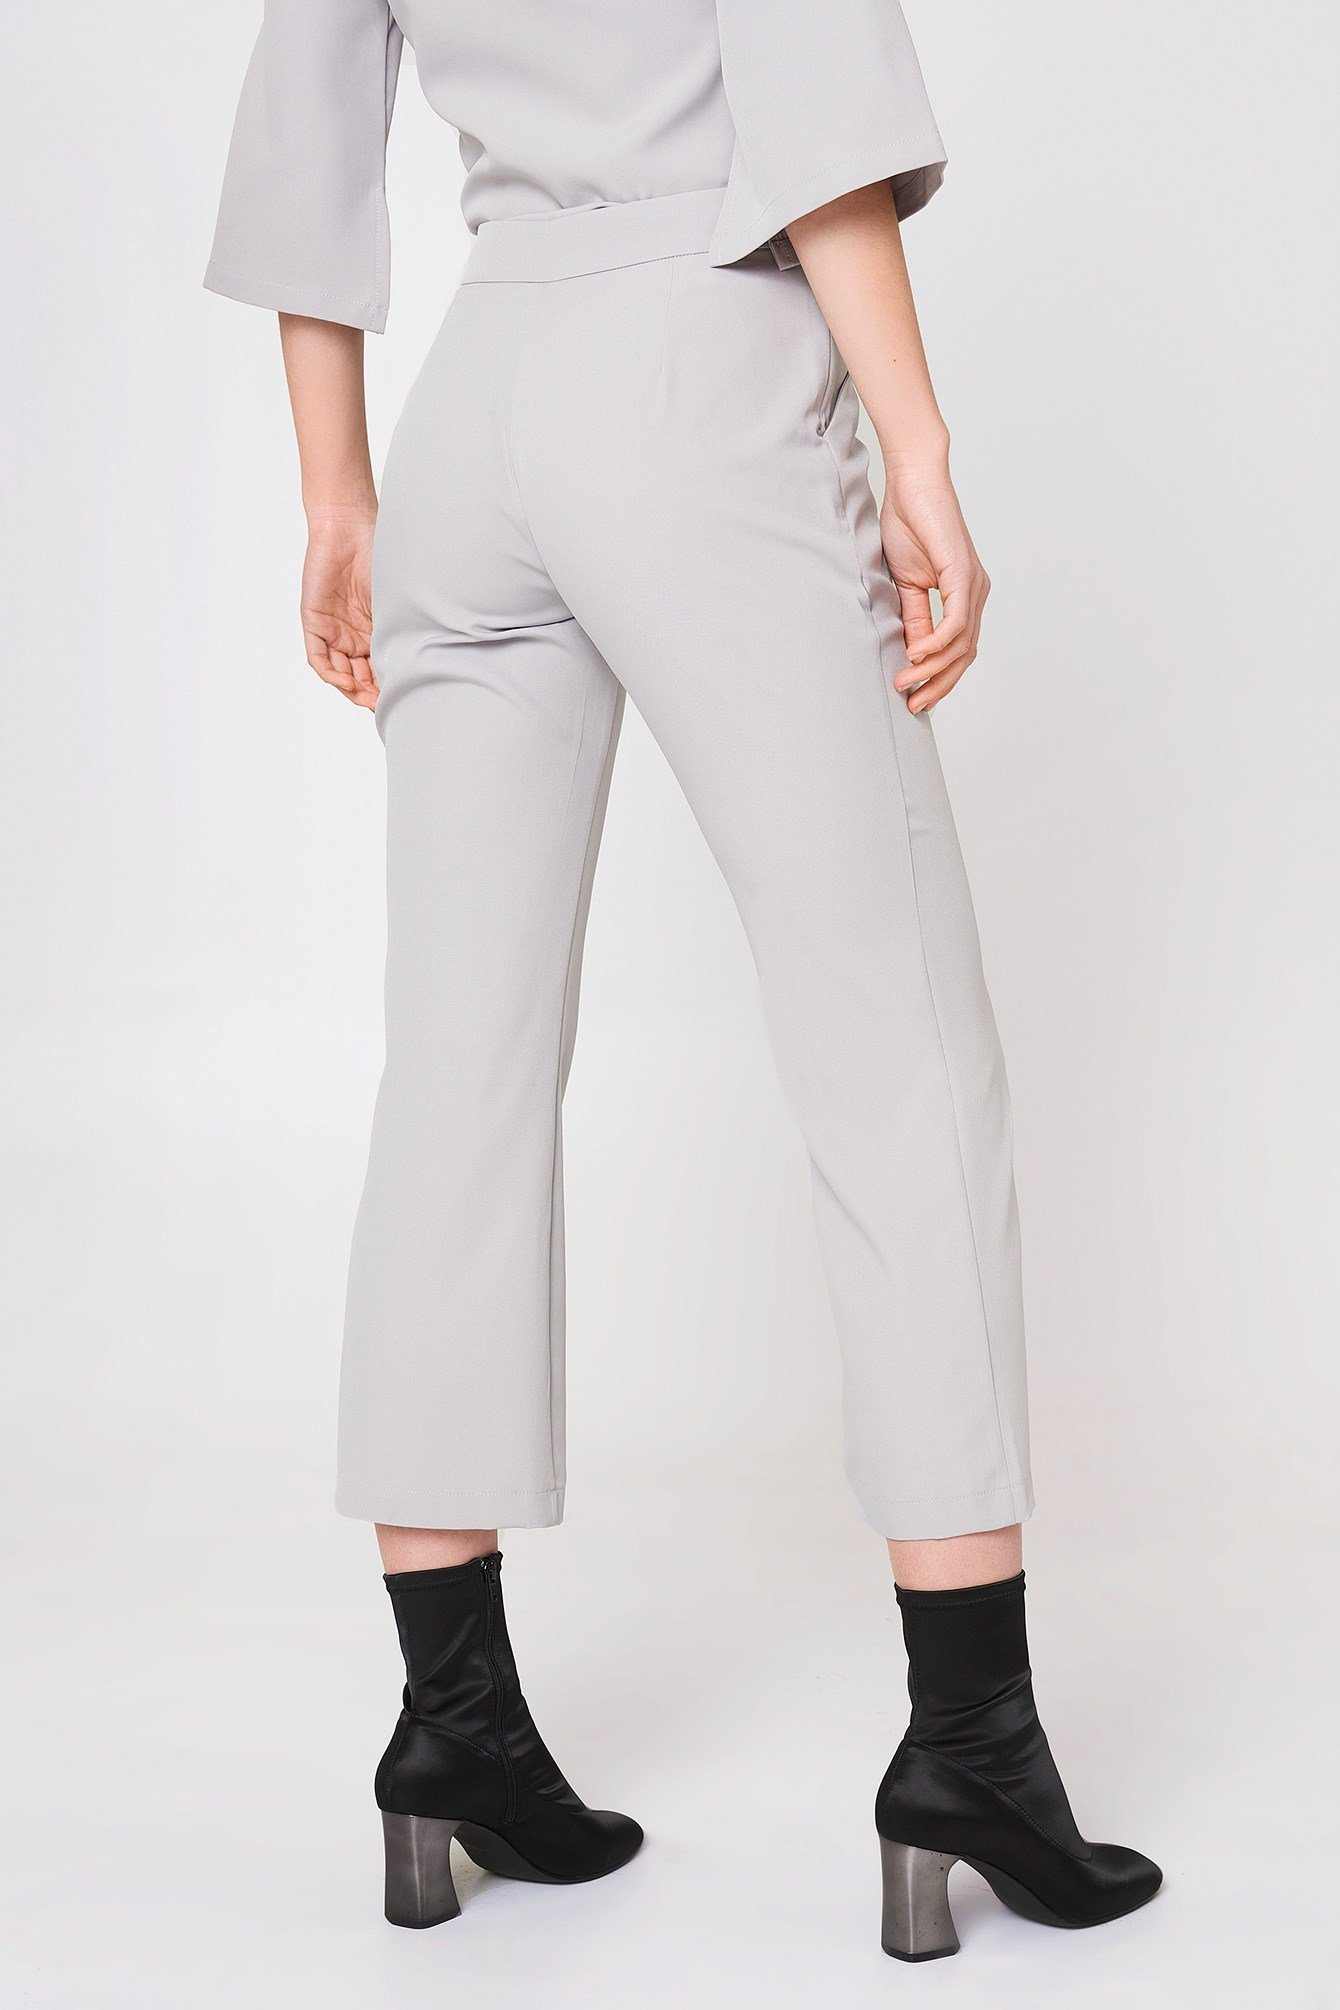 Tie Front Top and Flare Trouser Set NA-KD.COM